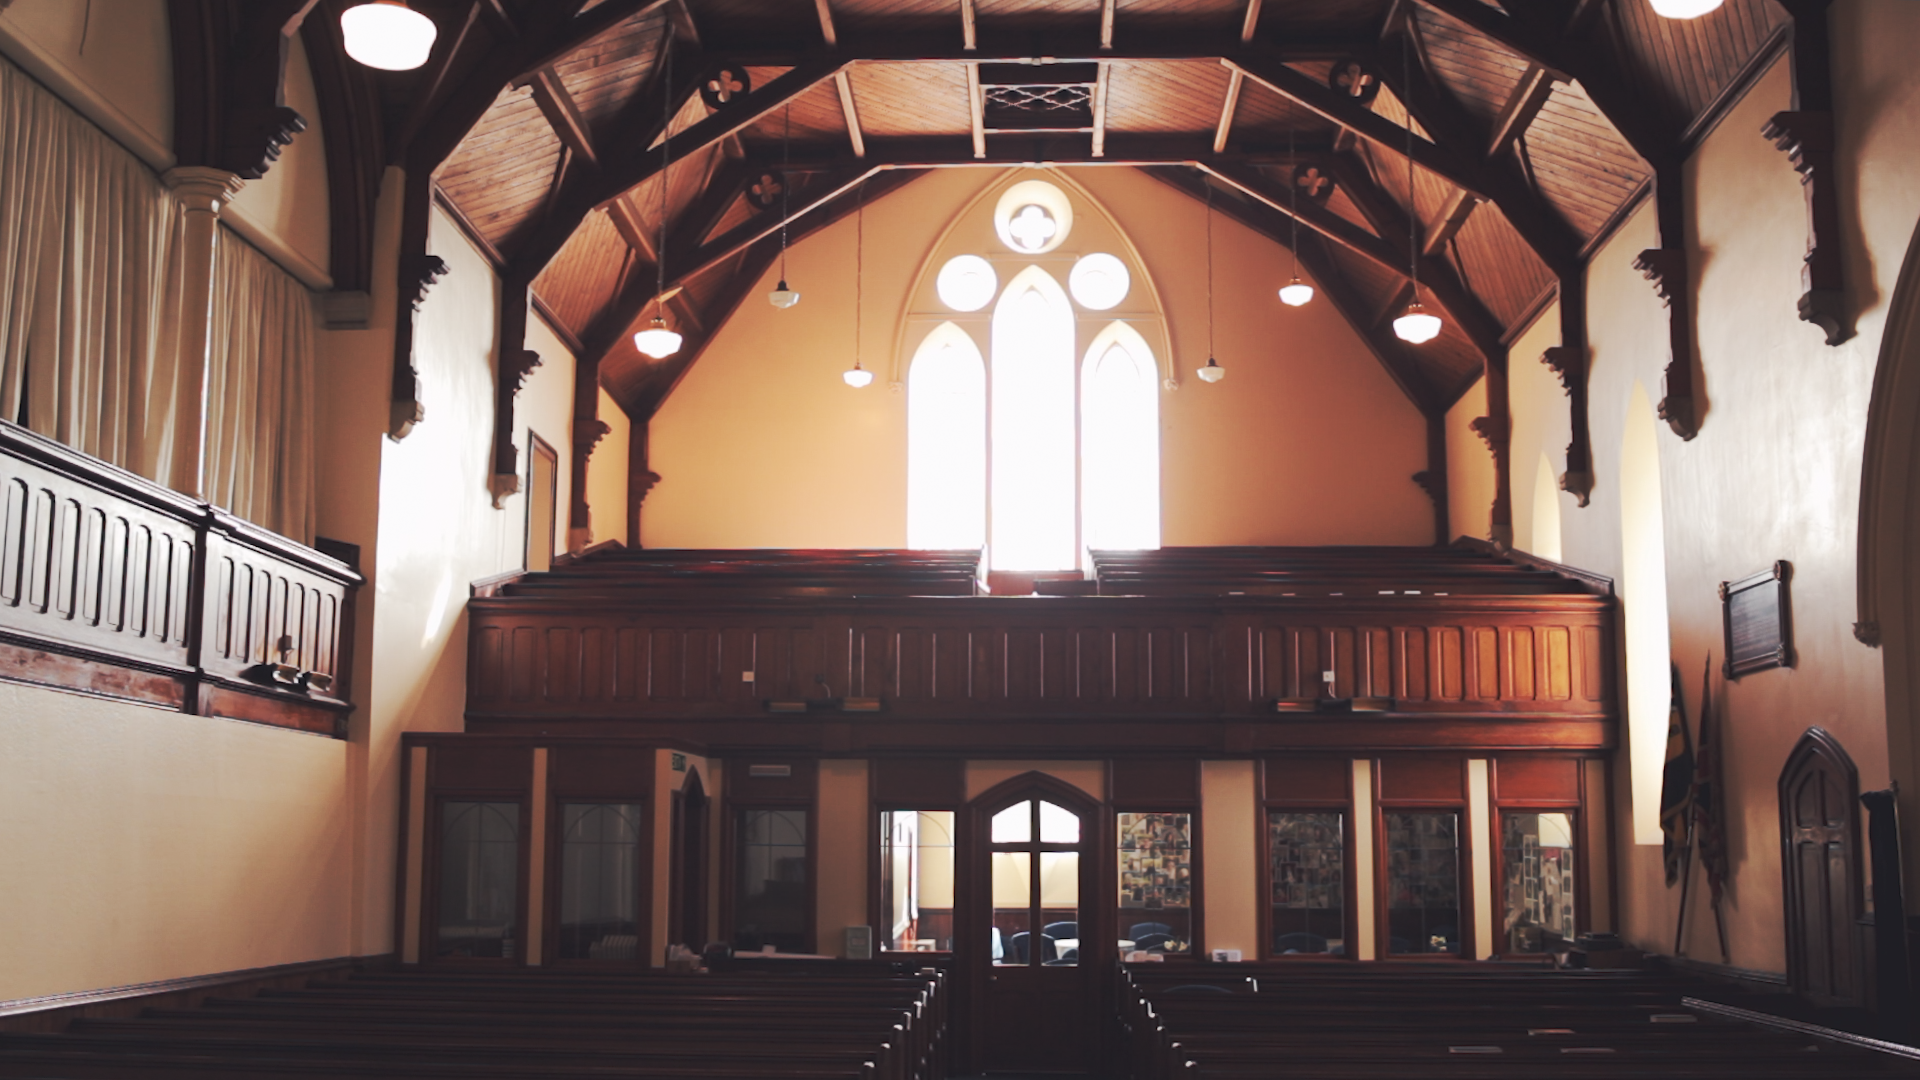 In your sermon or with staff -